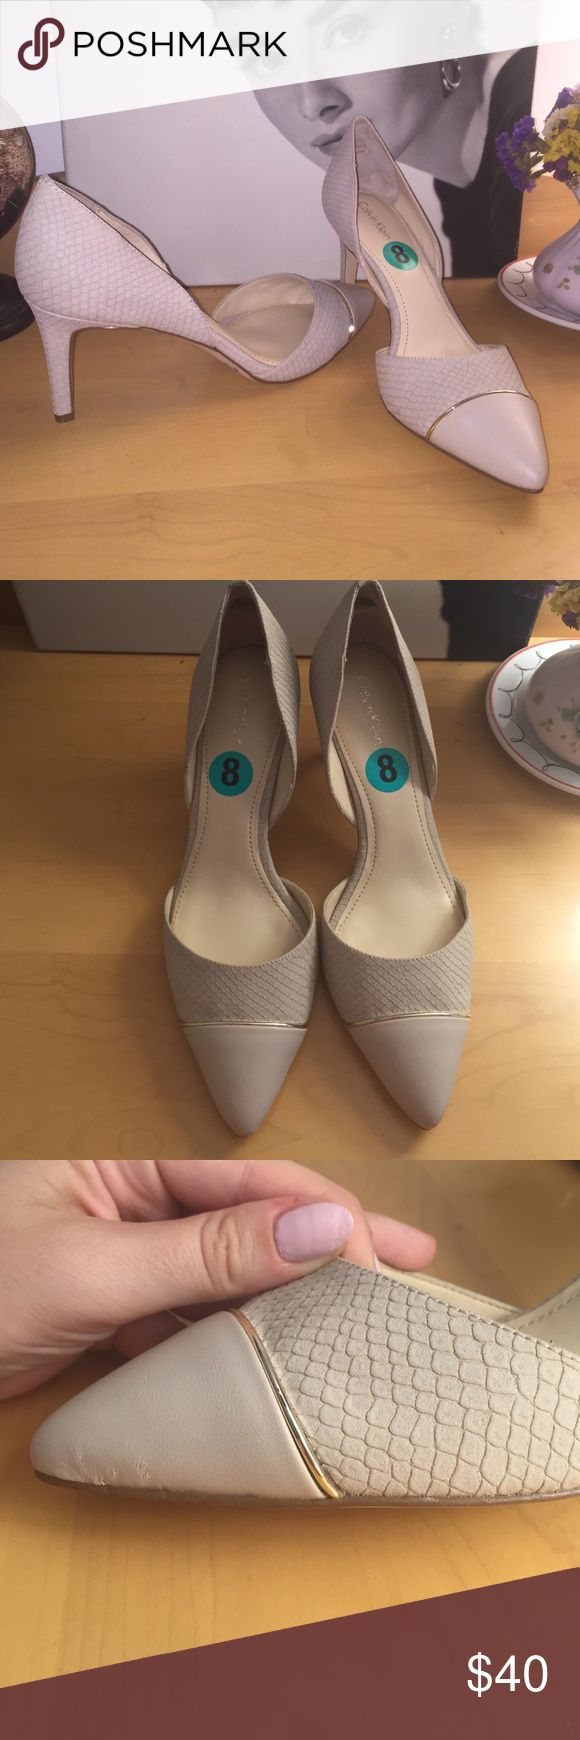 NWT CALVIN KLEIN Taupe Pumps * Details * size 8 Brand new never worn slip on Calvin Klein pumps. NWT from TJ Maxx $50! (Orig. $80) Color is elegant & diverse meaning it's an off white/taupe/light grey color depending on the lighting. Scallop style detailing all over & pretty dainty gold strap and solid pointy tips. Very very minor imperfections on tip of front (see close up) never noticed when I purchased & you can't see while wearing, just sharing for transparency. No-slip elastic band in…